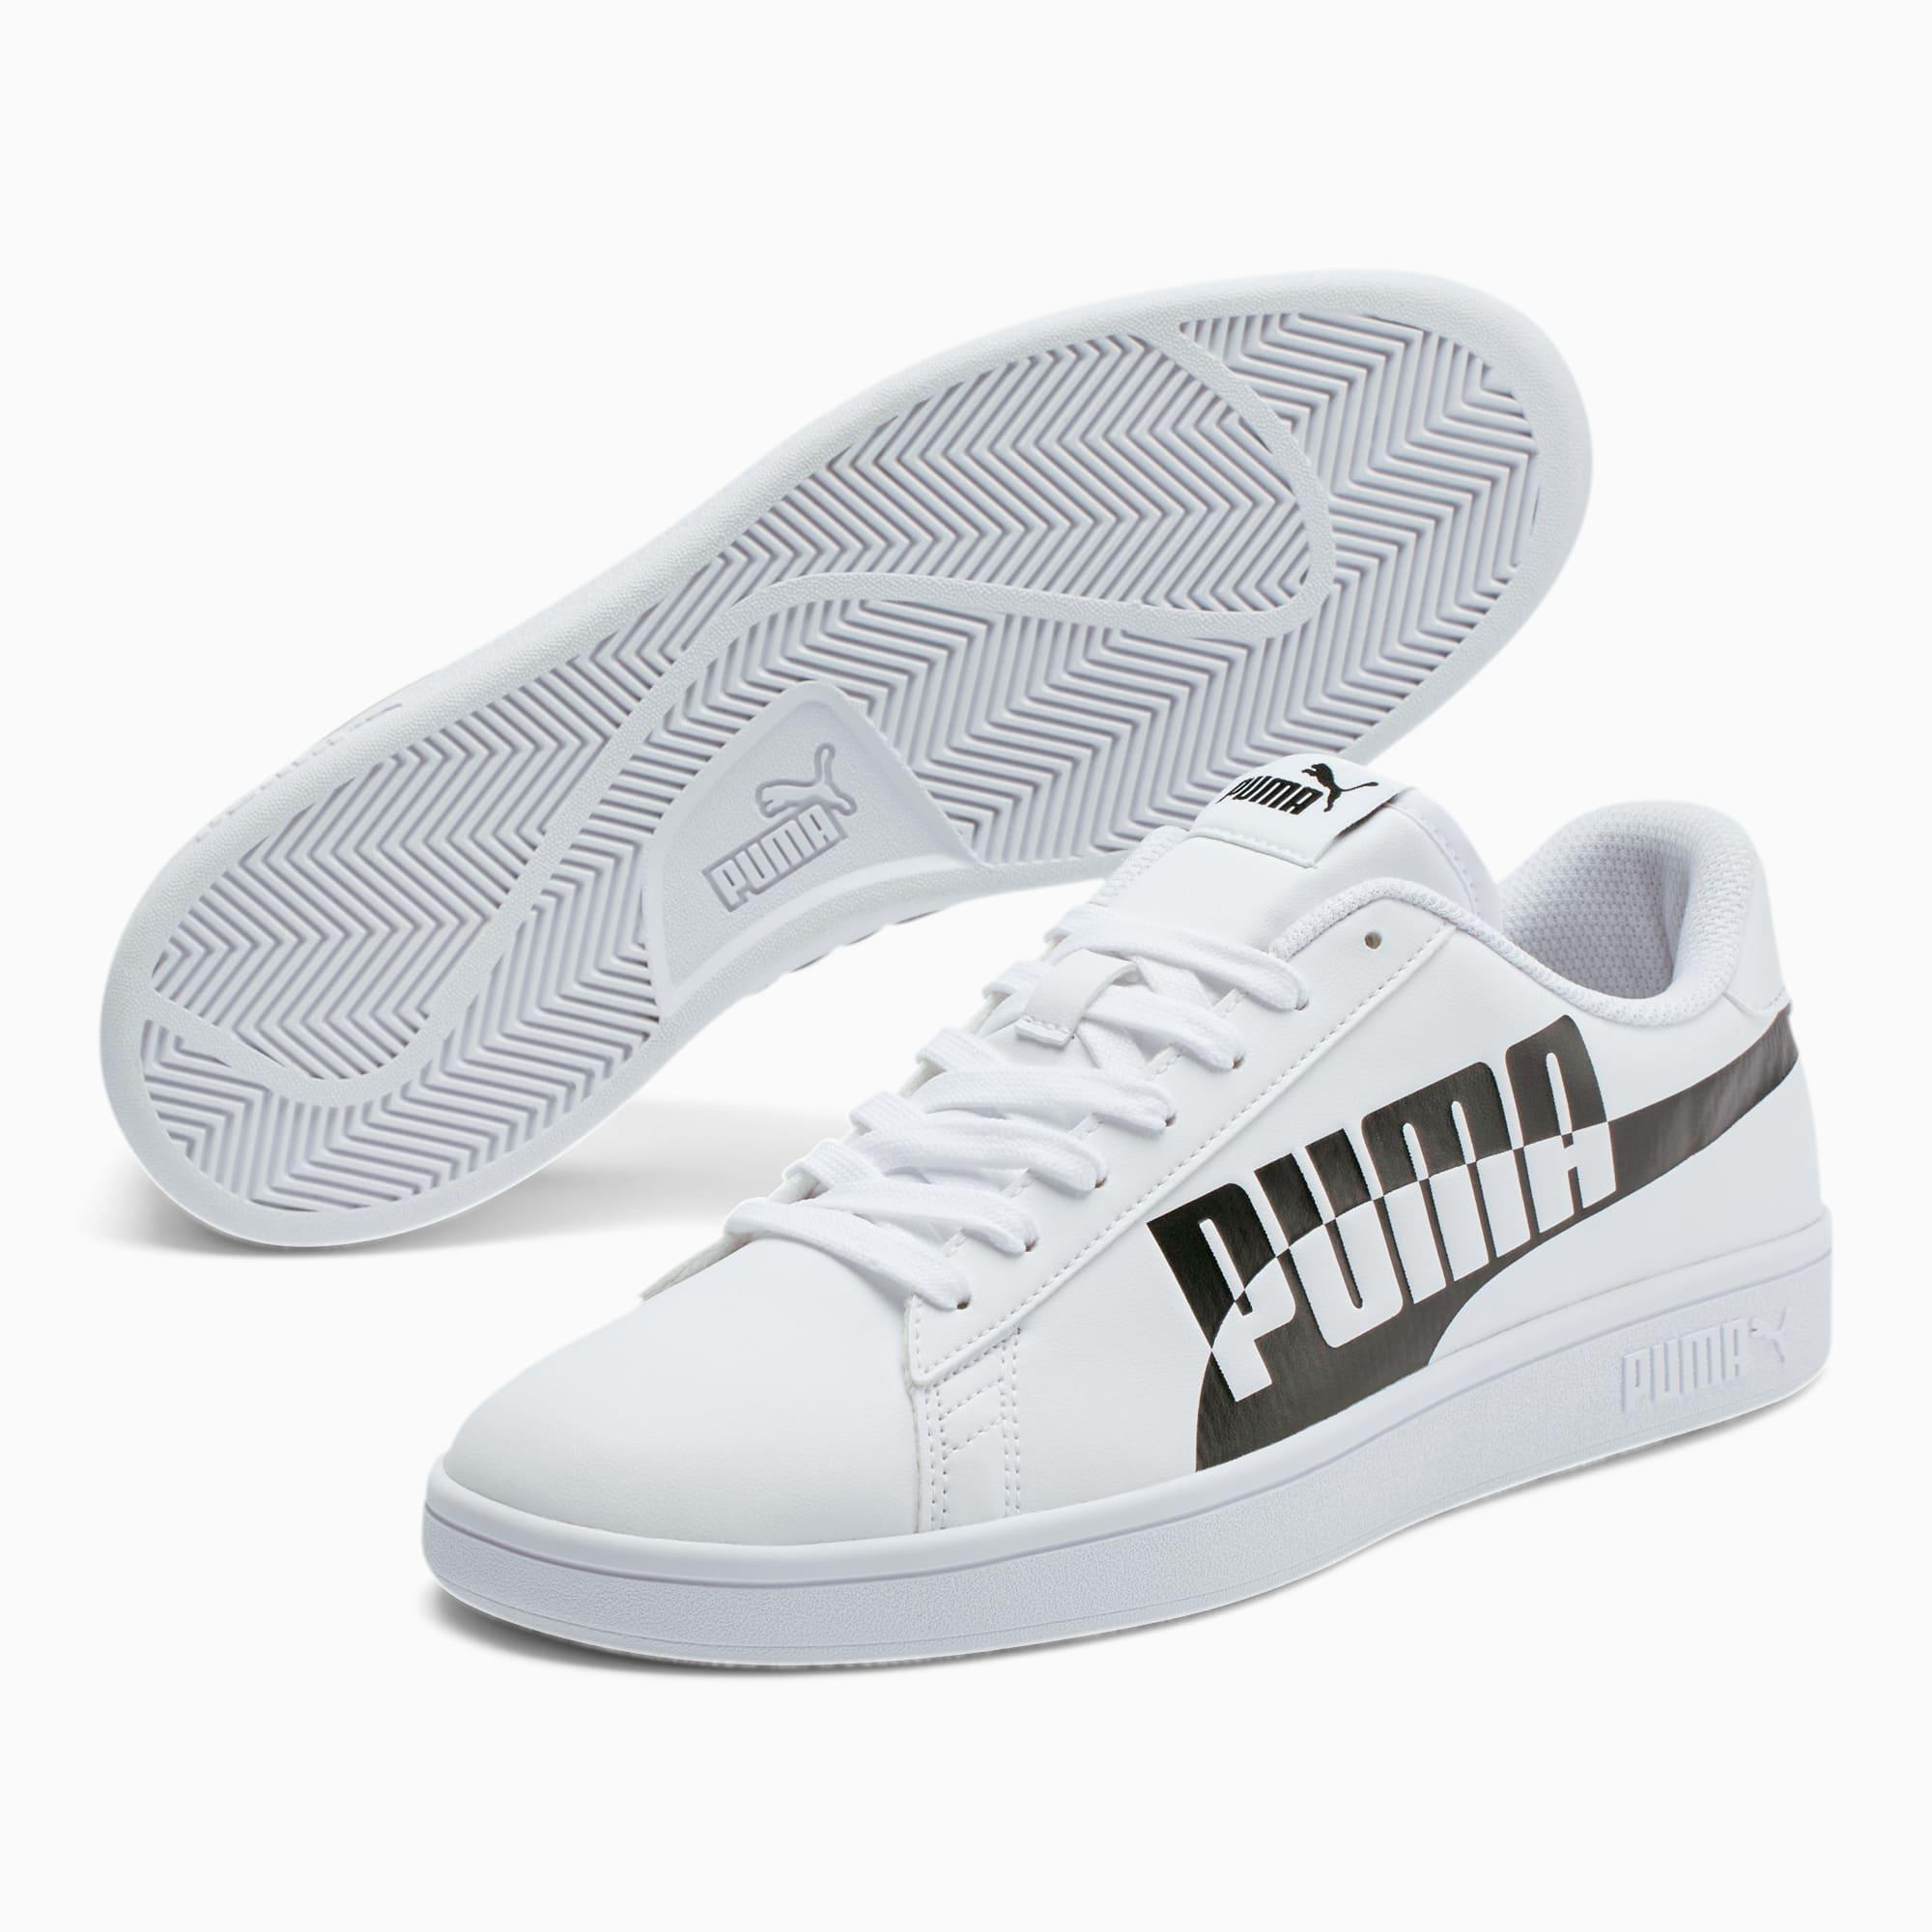 PUMA Leather Smash V2 Max Sneakers in White for Men - Lyst